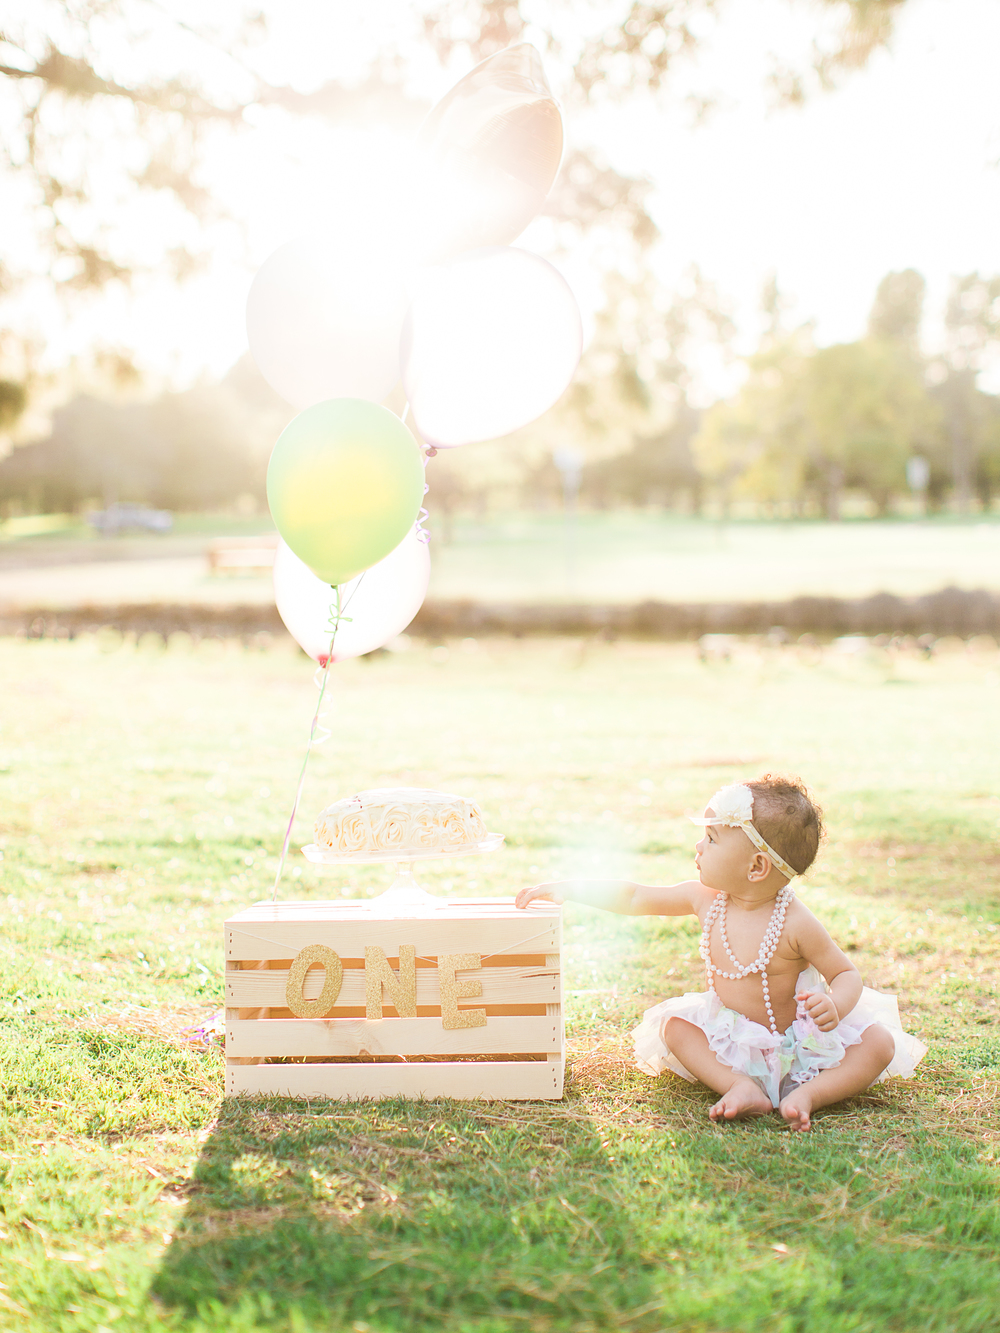 AleiahRei_1stBirthday_Brandon J Ferlin Photography-70.jpg